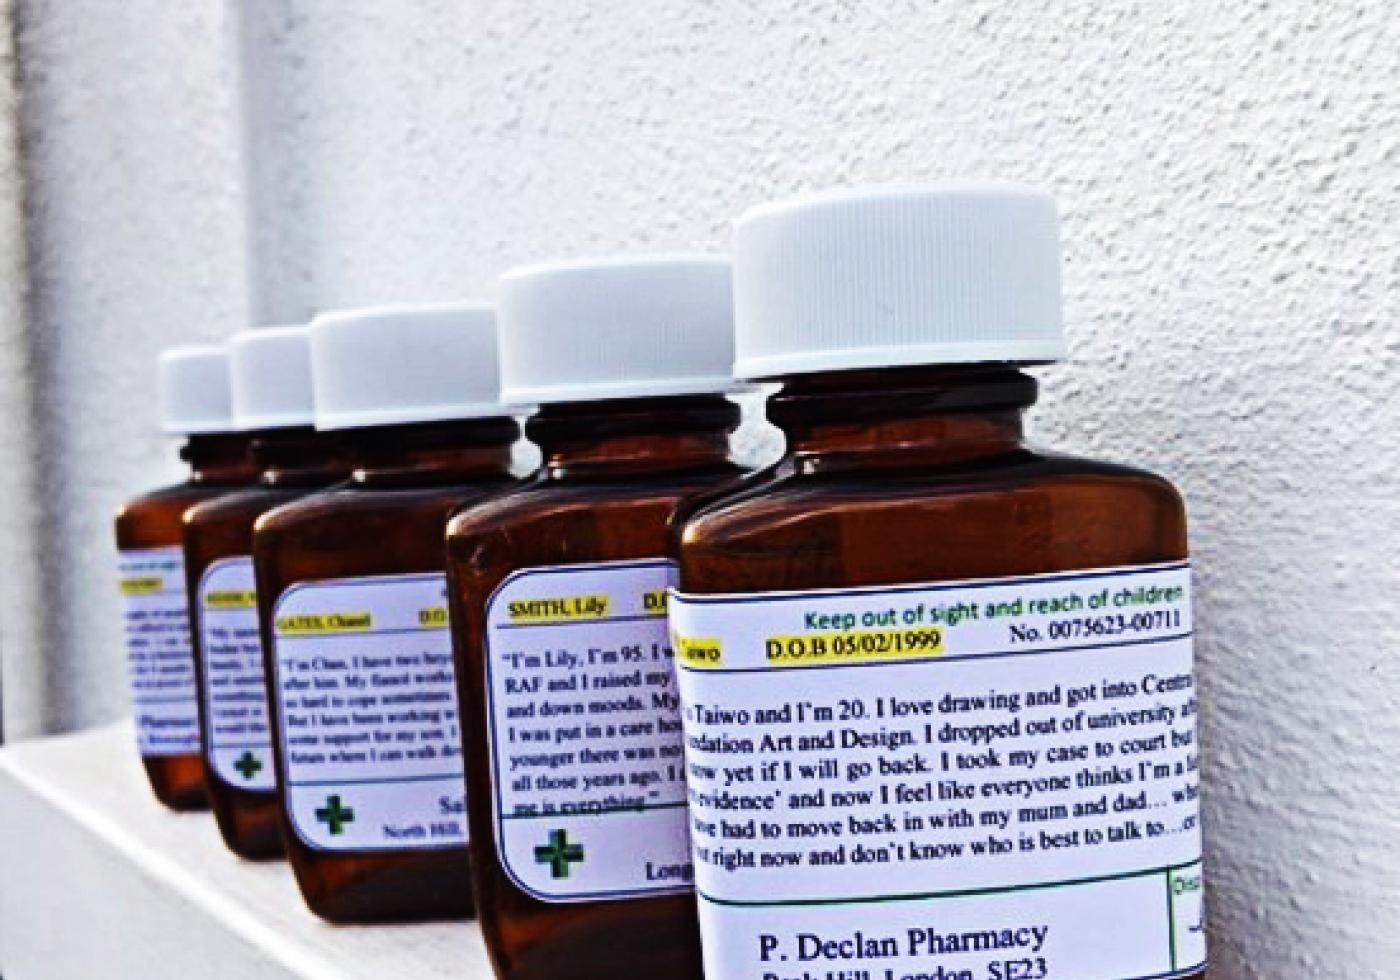 Pill bottles with social work stories printed on